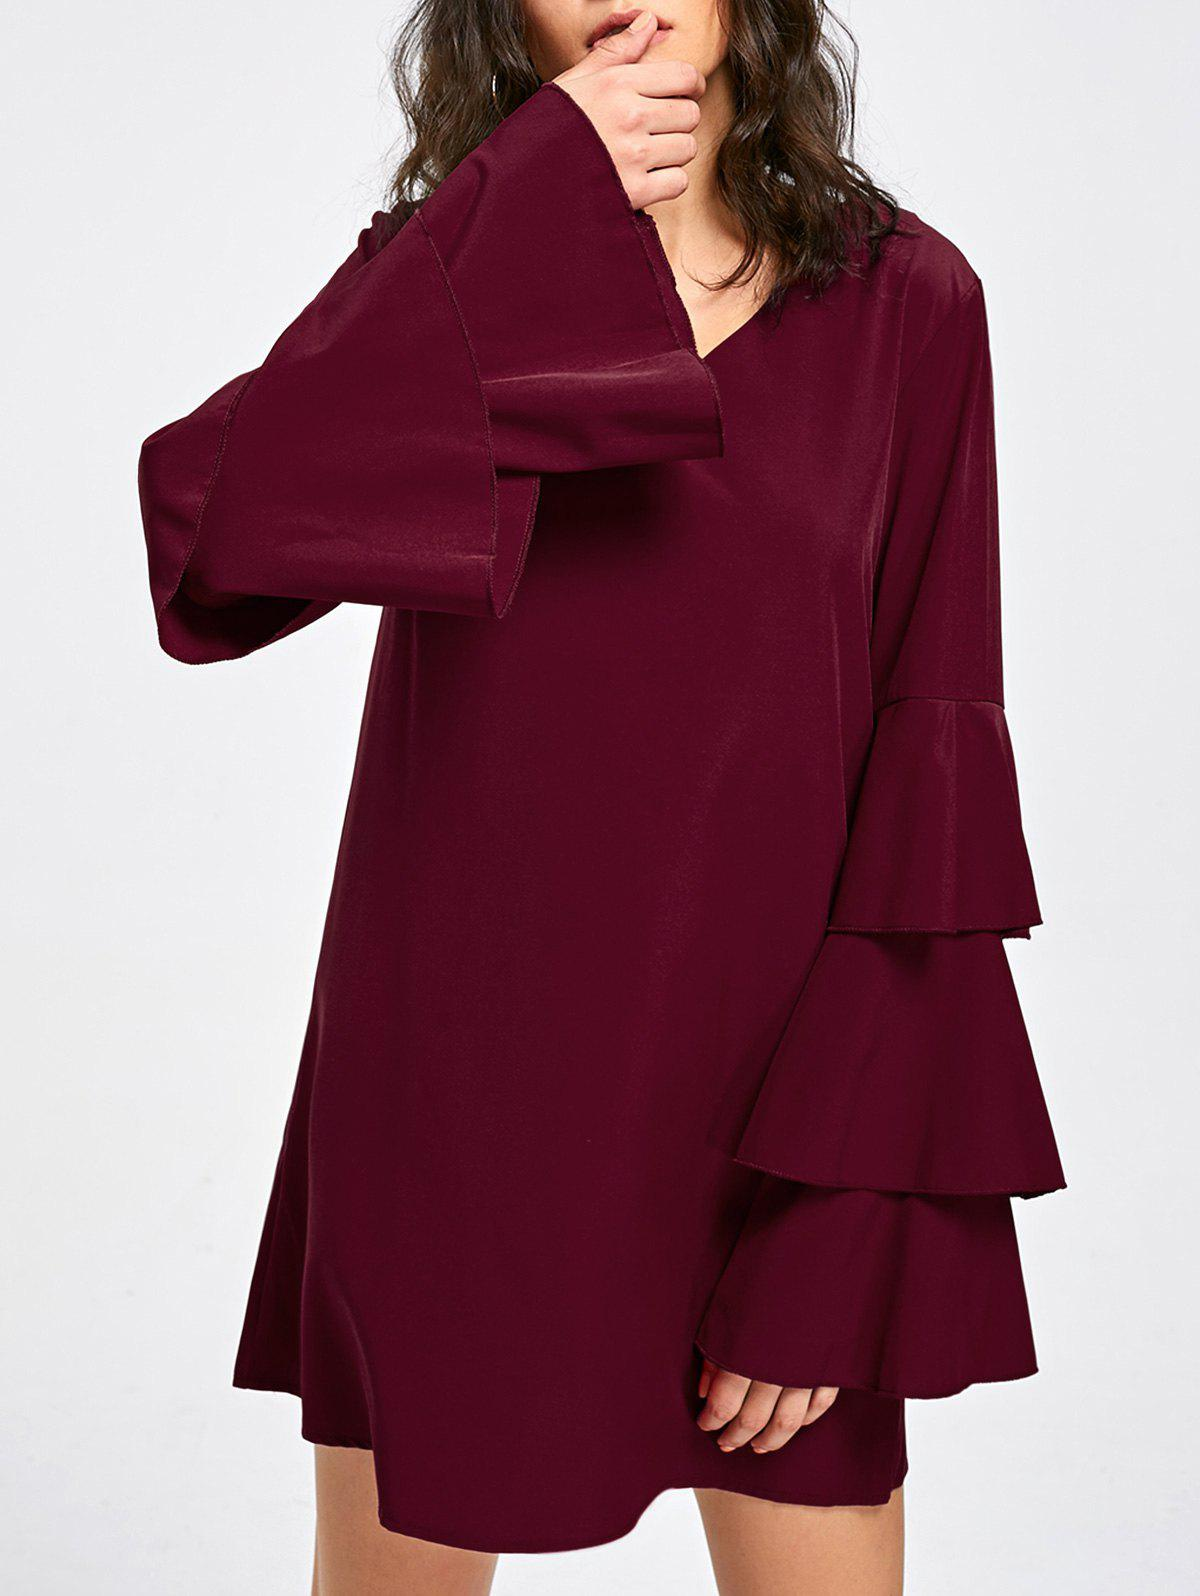 V Neck Layered Flare Sleeve Dress layered v neck bell sleeve dress